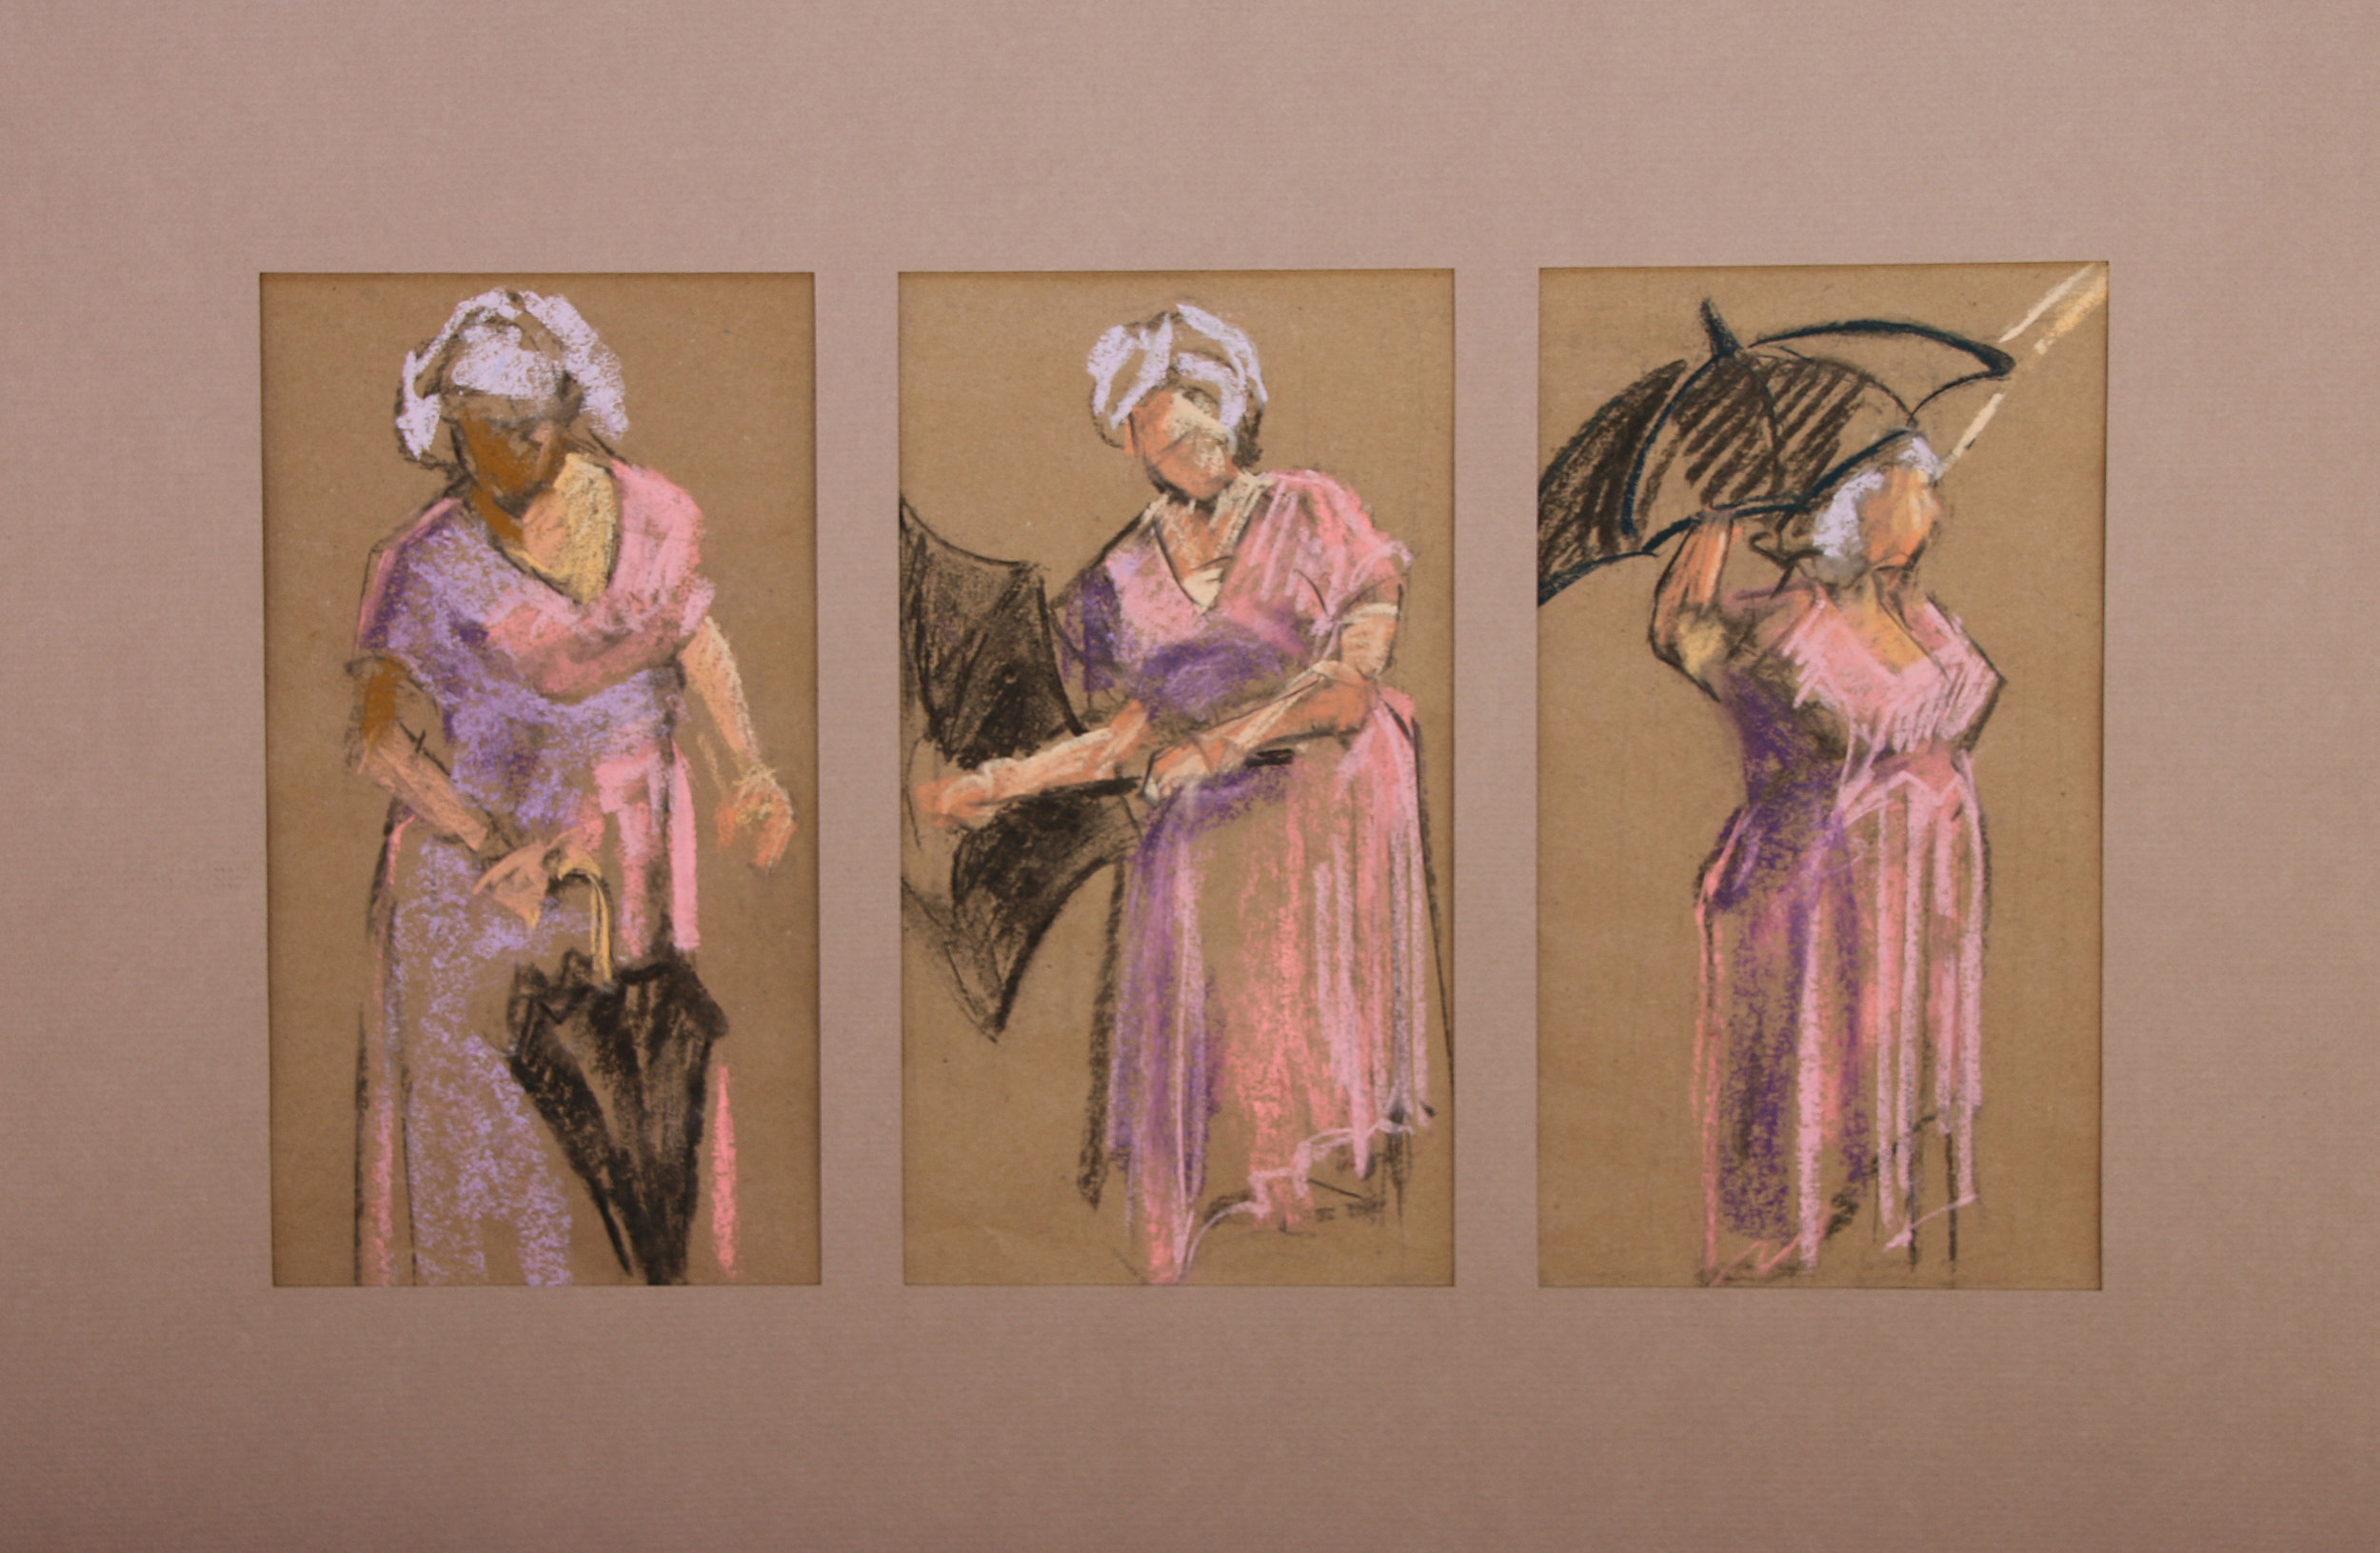 HONORABLE MENTION - Mary Holzer | Taxi | Pastel on paper